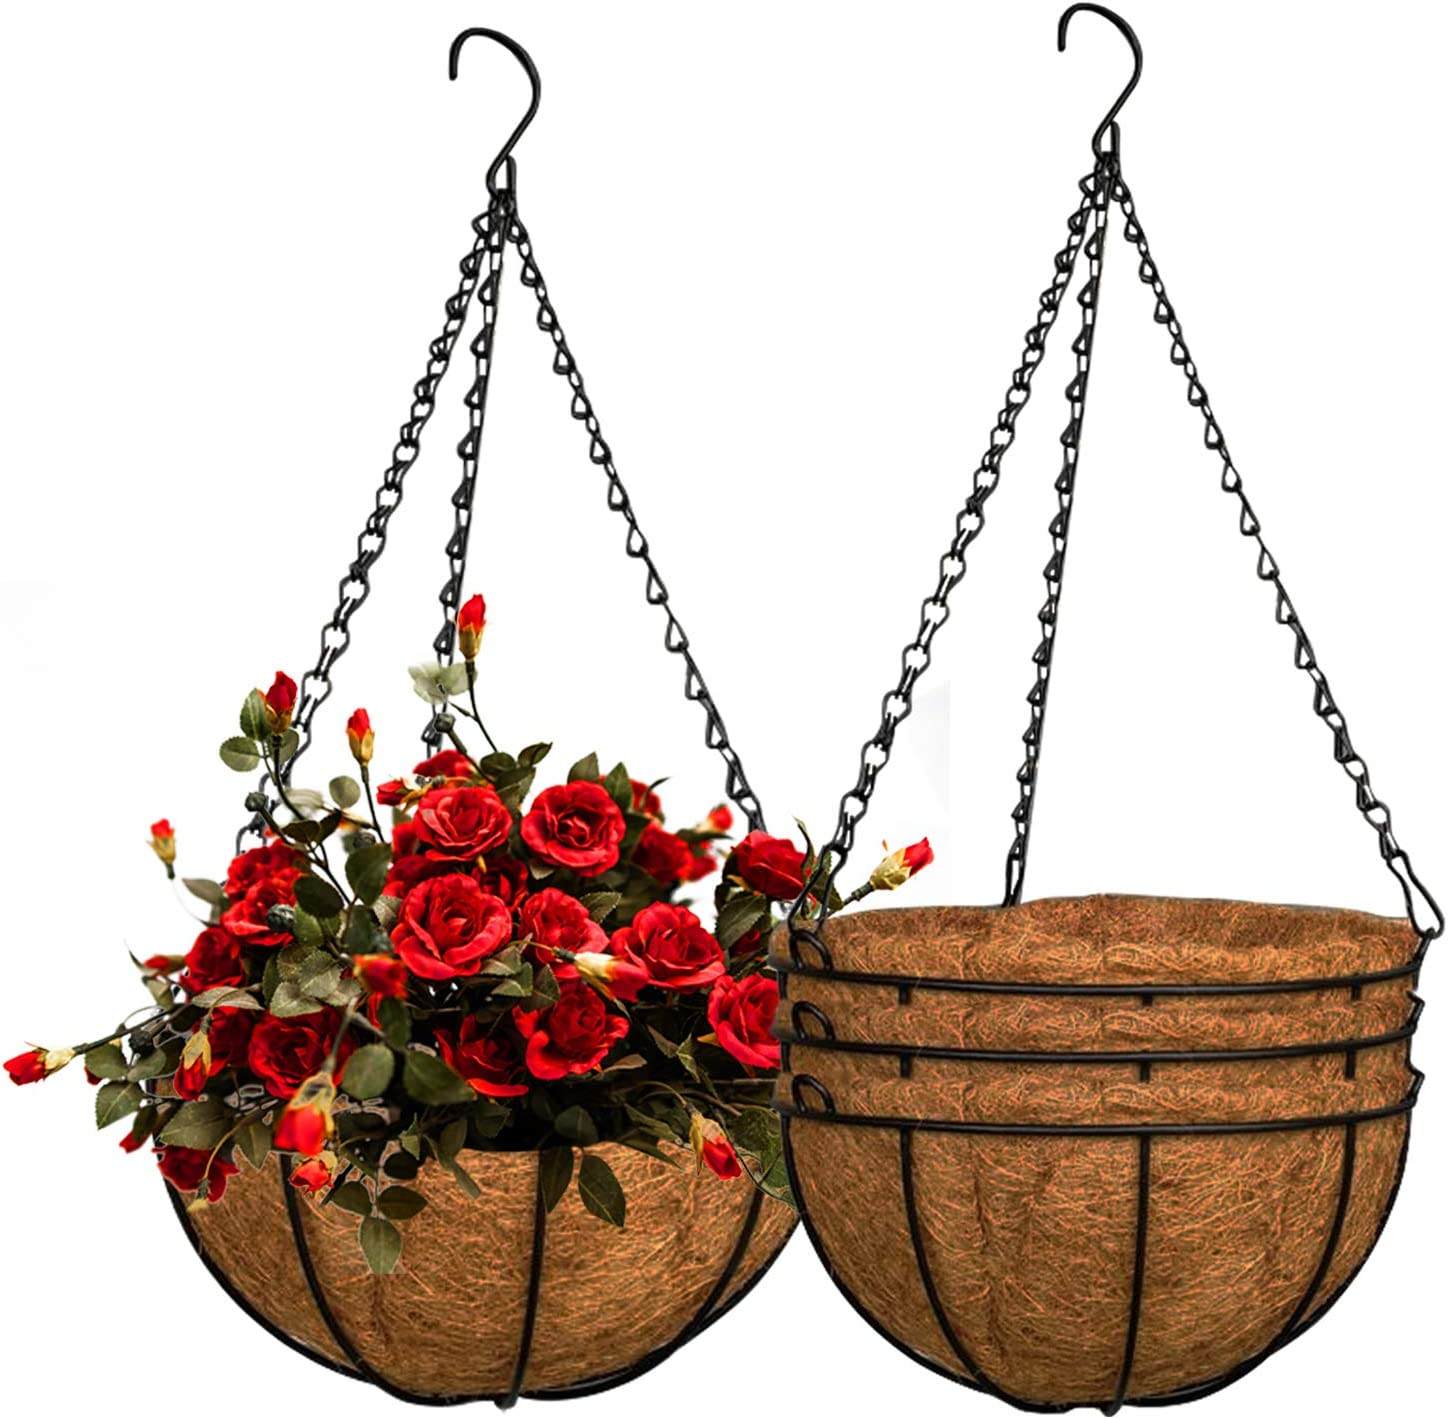 ZeeDix 3 Pack 10inch Metal Hanging Basket Co Max 45% OFF 55% OFF Planter with